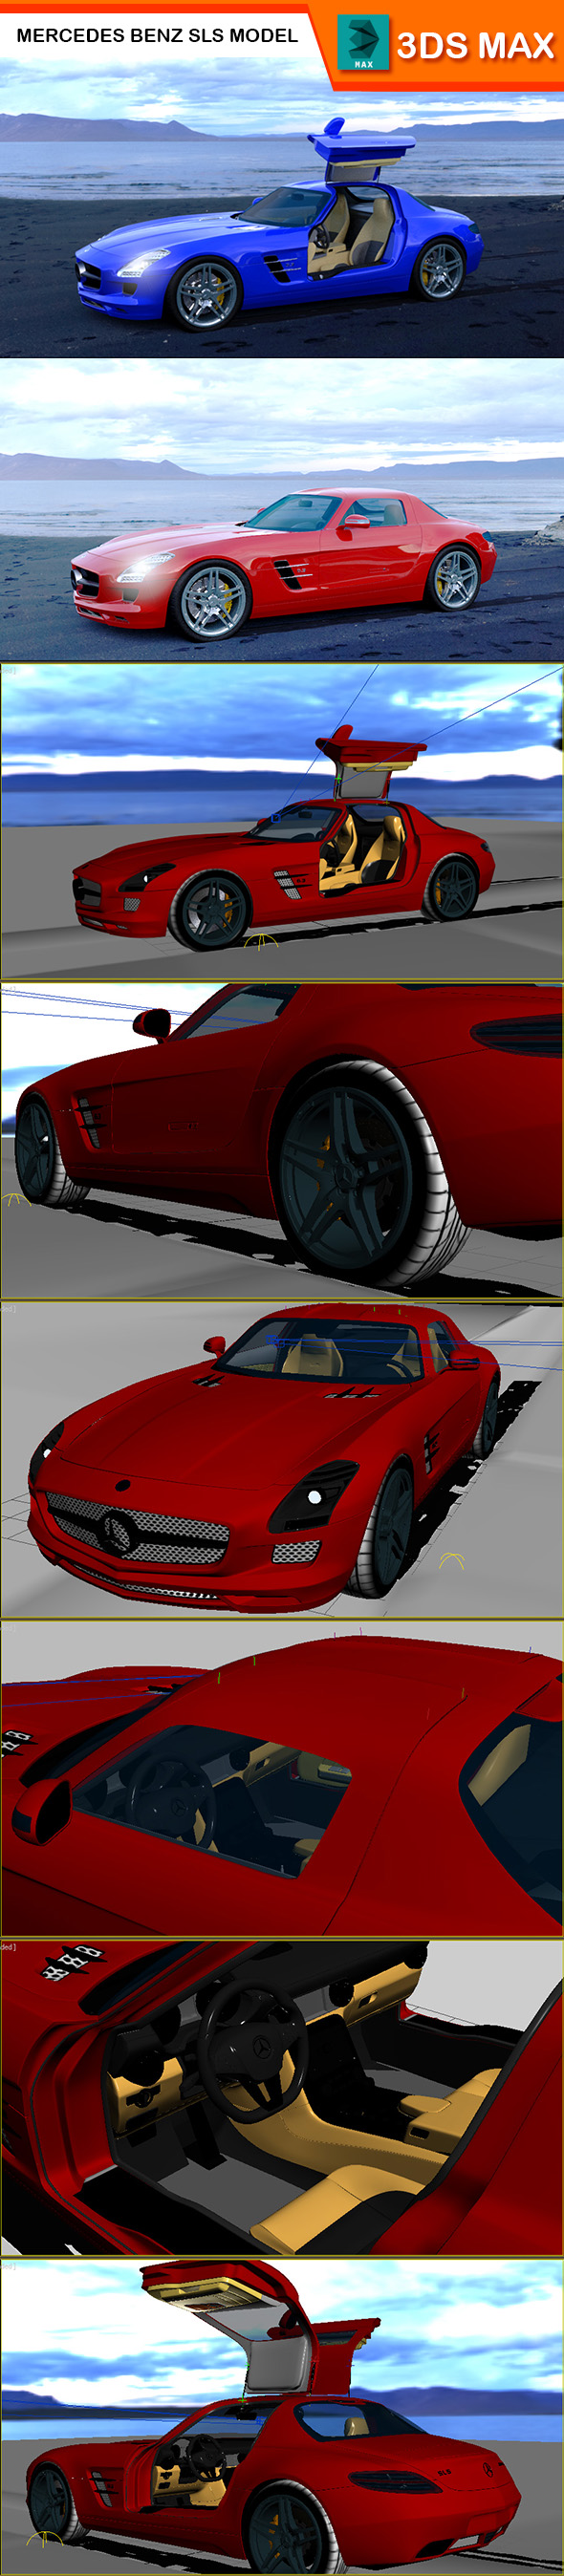 Mercedes Benz SLS Model with Render Setup